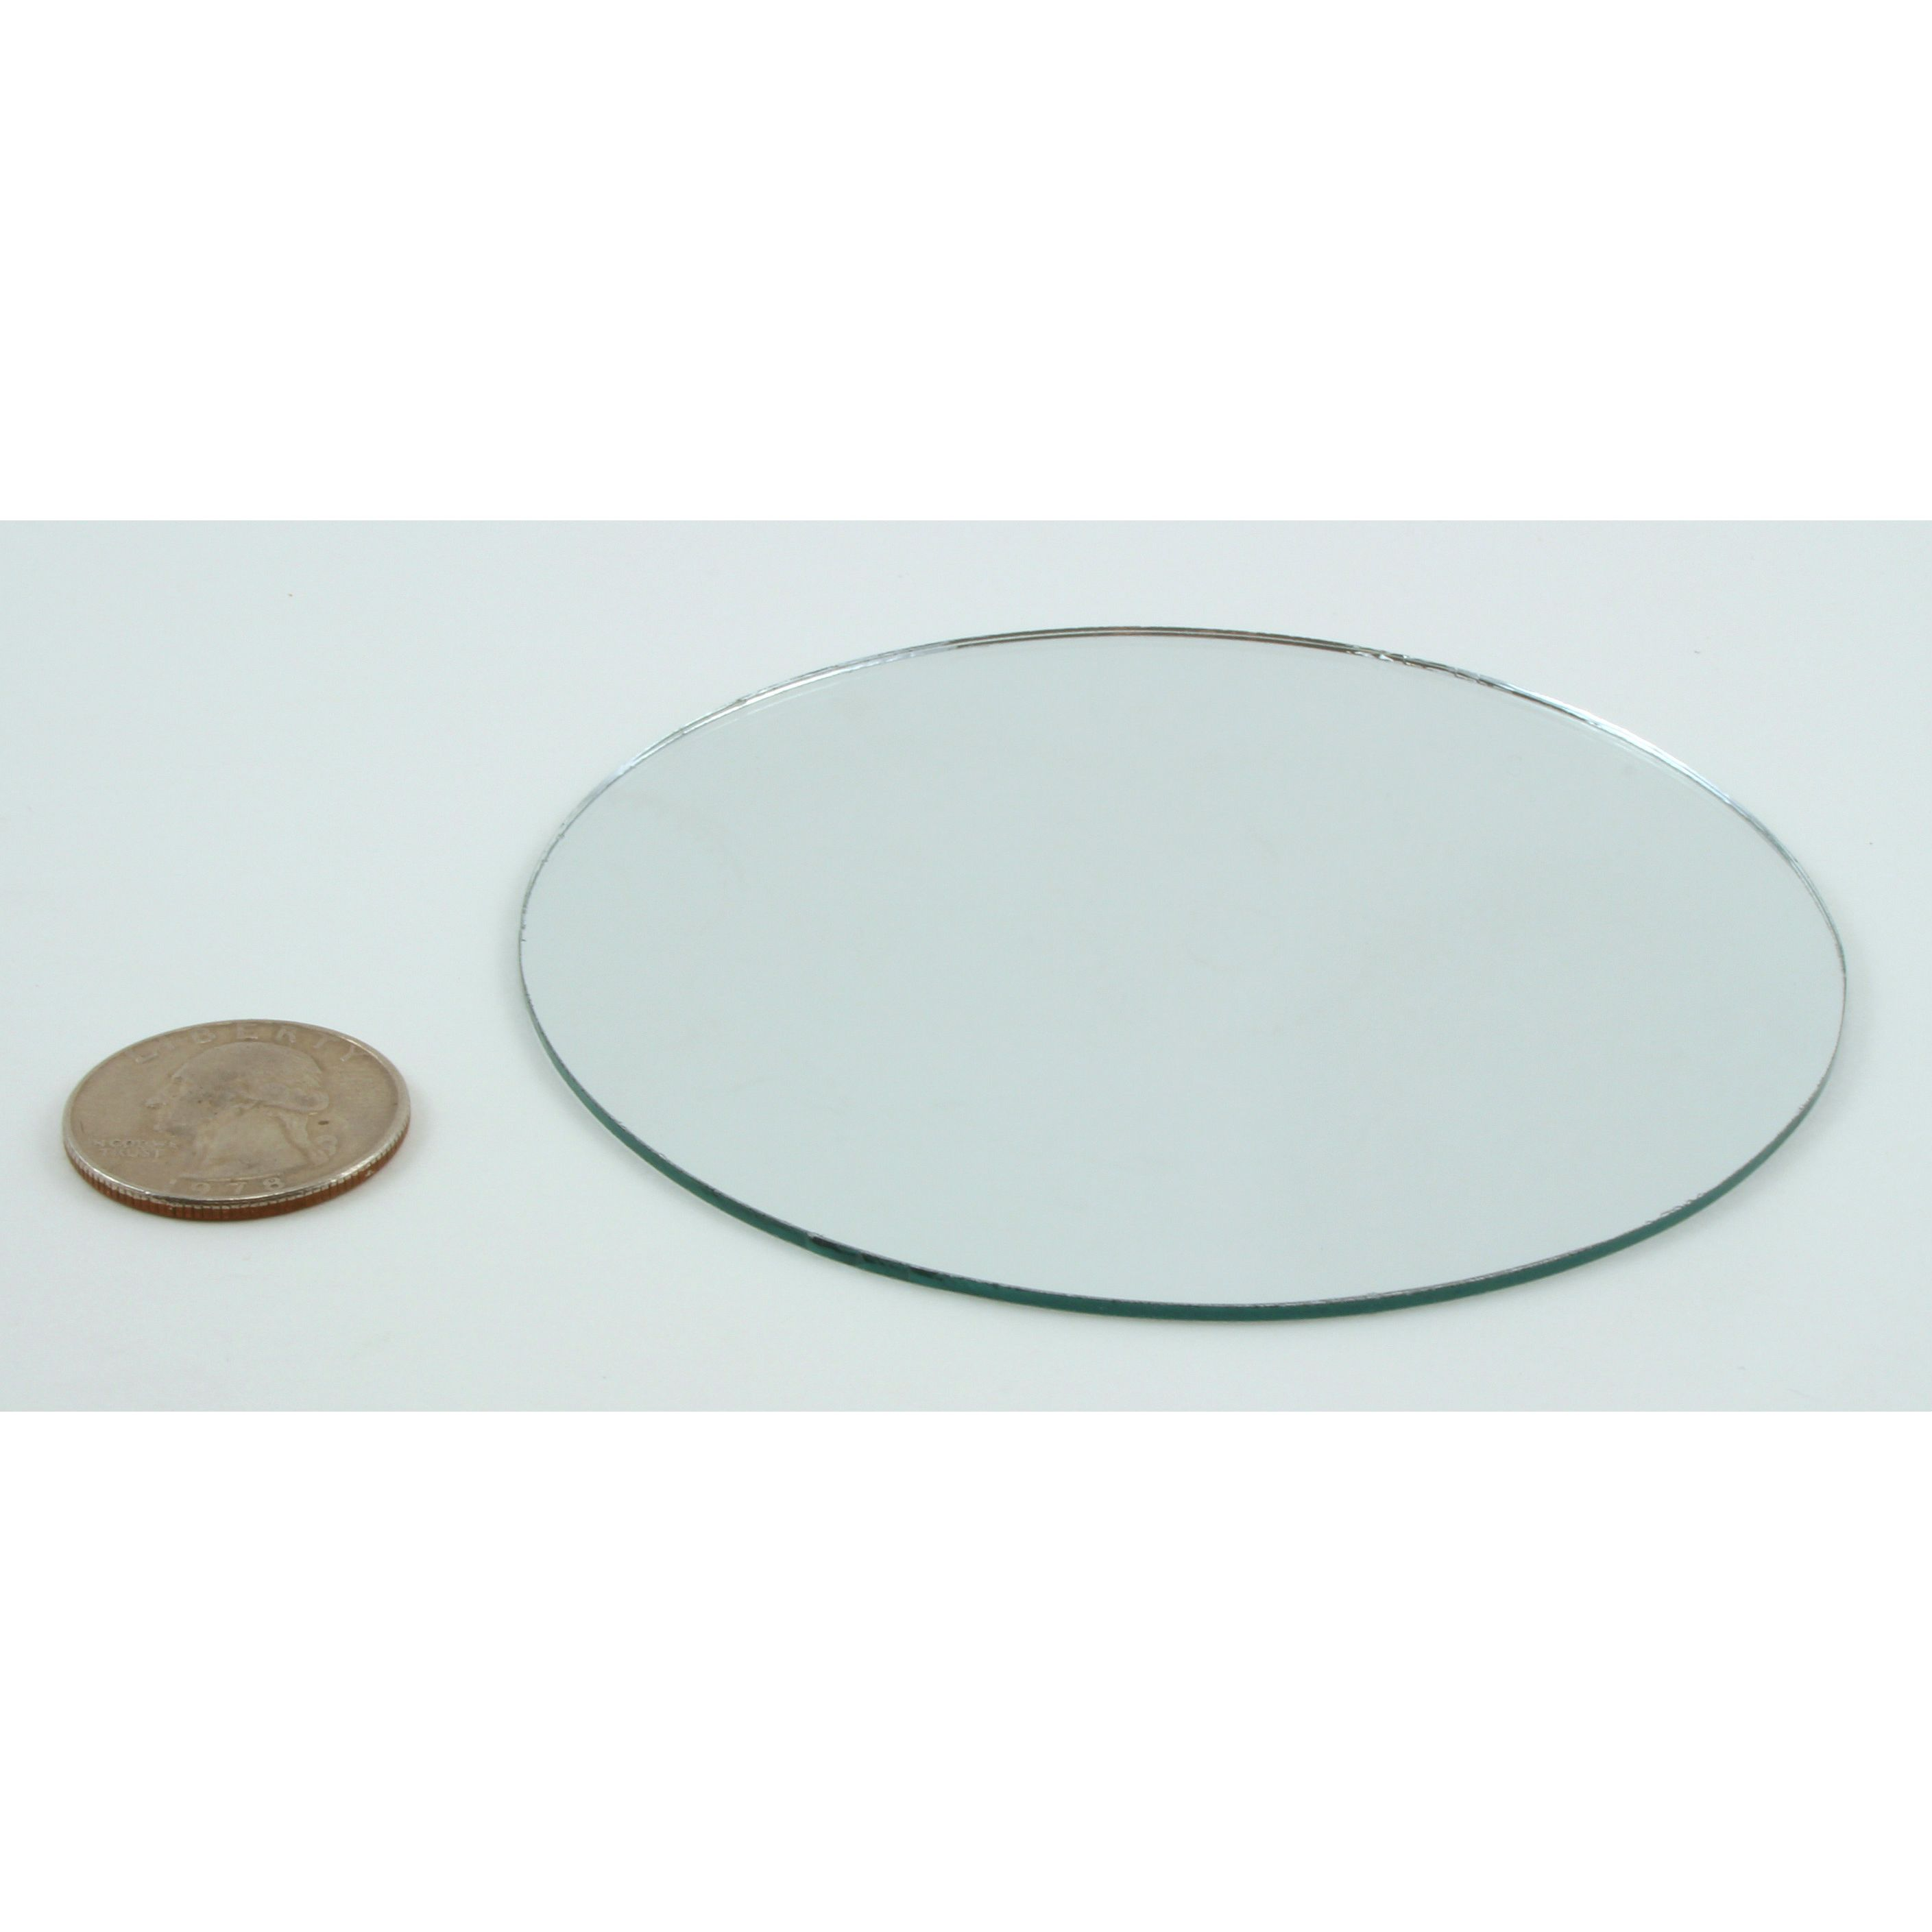 4 inch glass small round mirrors bulk 100 pieces mirror for Small round craft mirrors